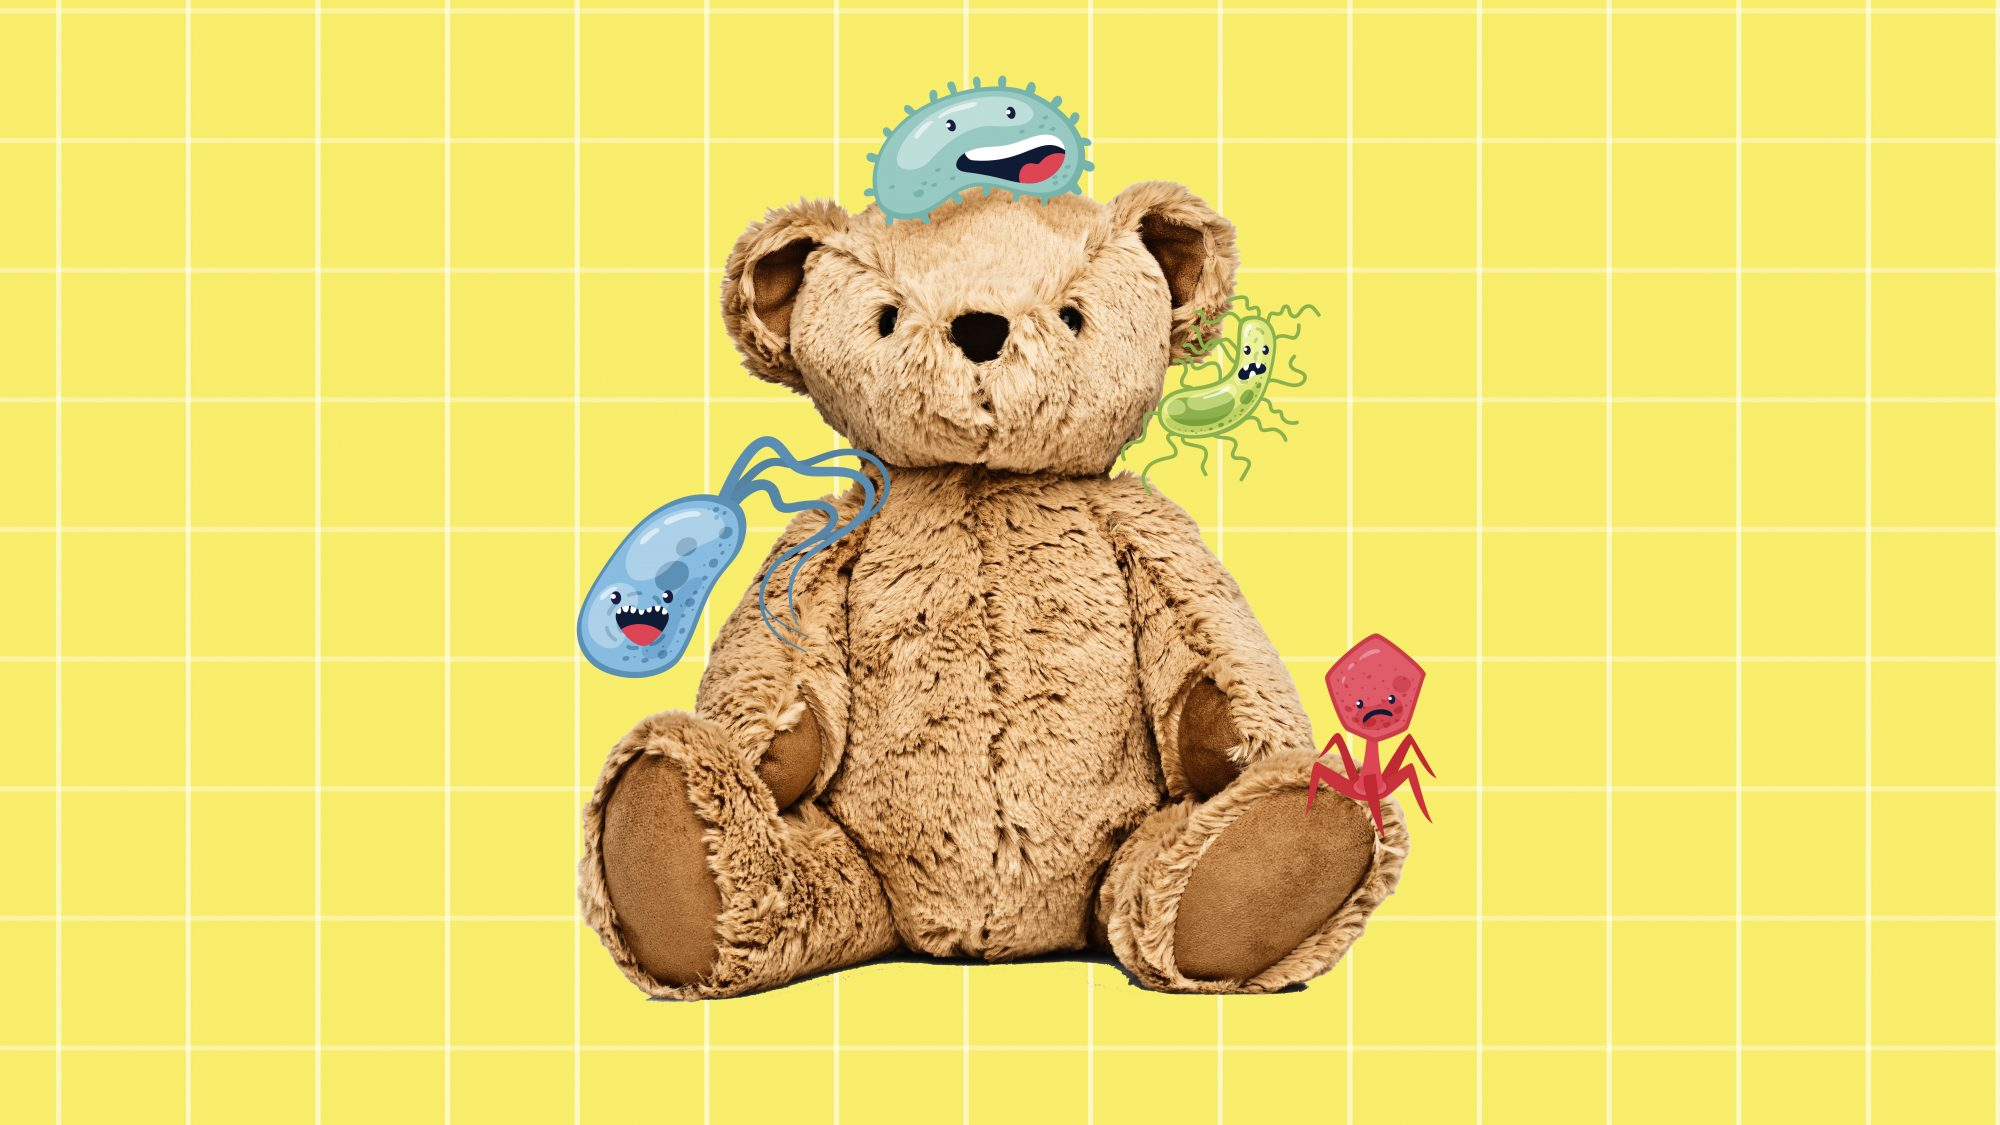 Your Kids' Stuffed Animals Are Germier Than You Think—Here's How to Disinfect Them